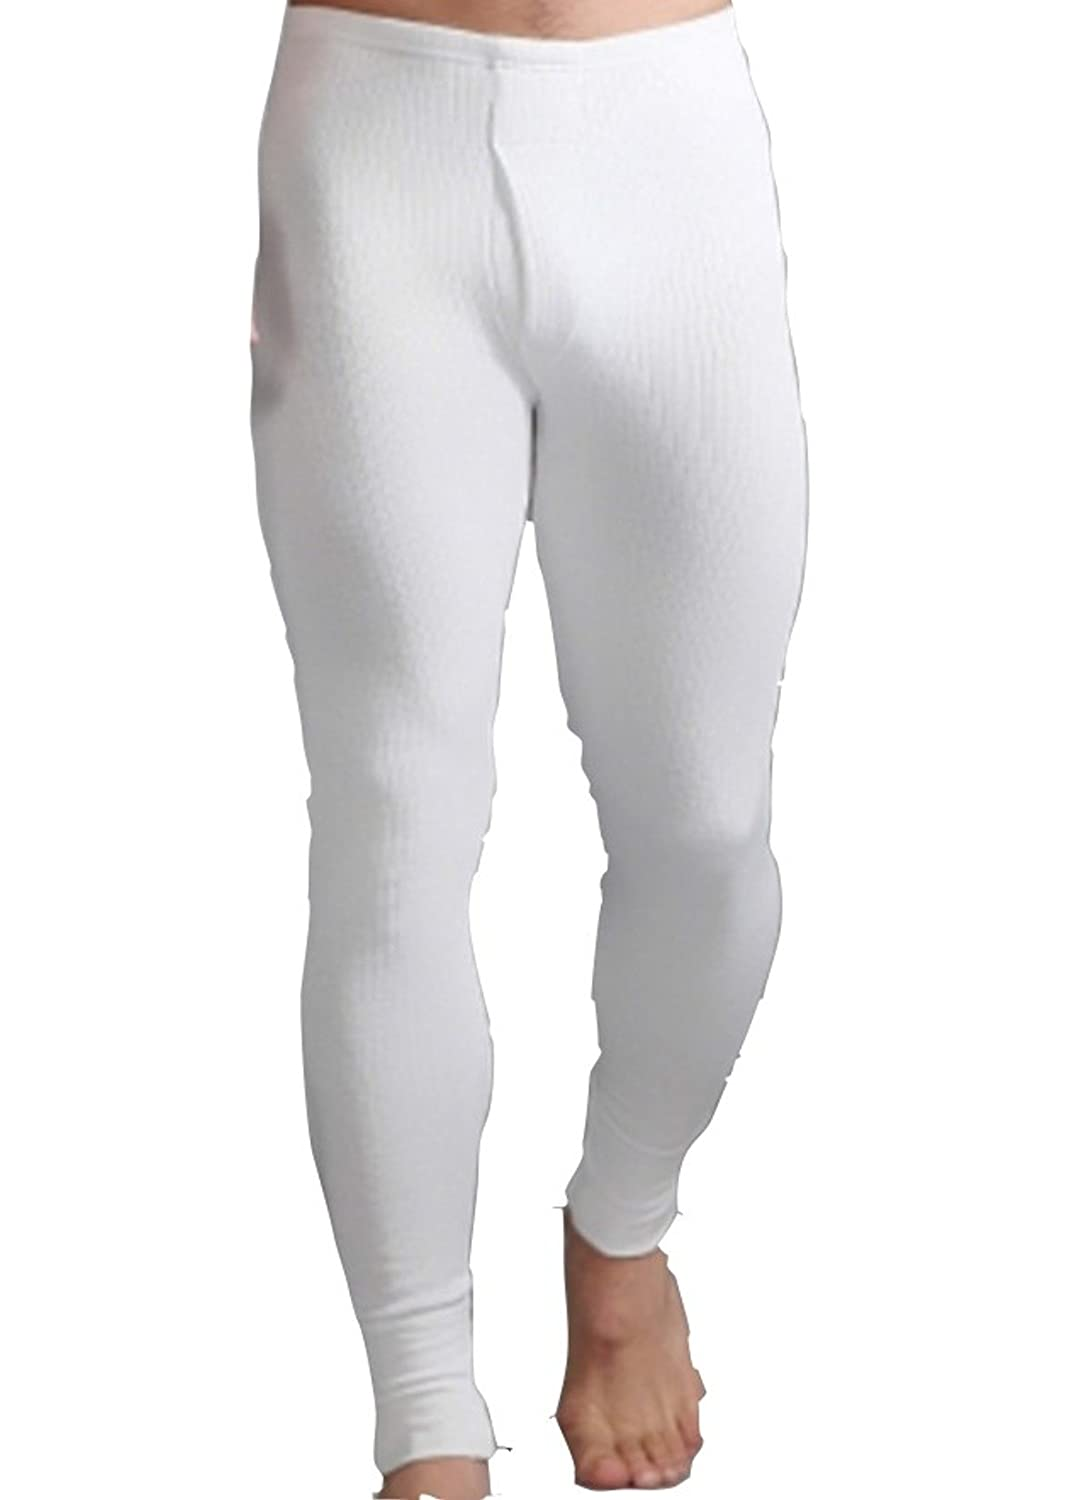 4 Pairs Men's White Thermal Long Johns Pants